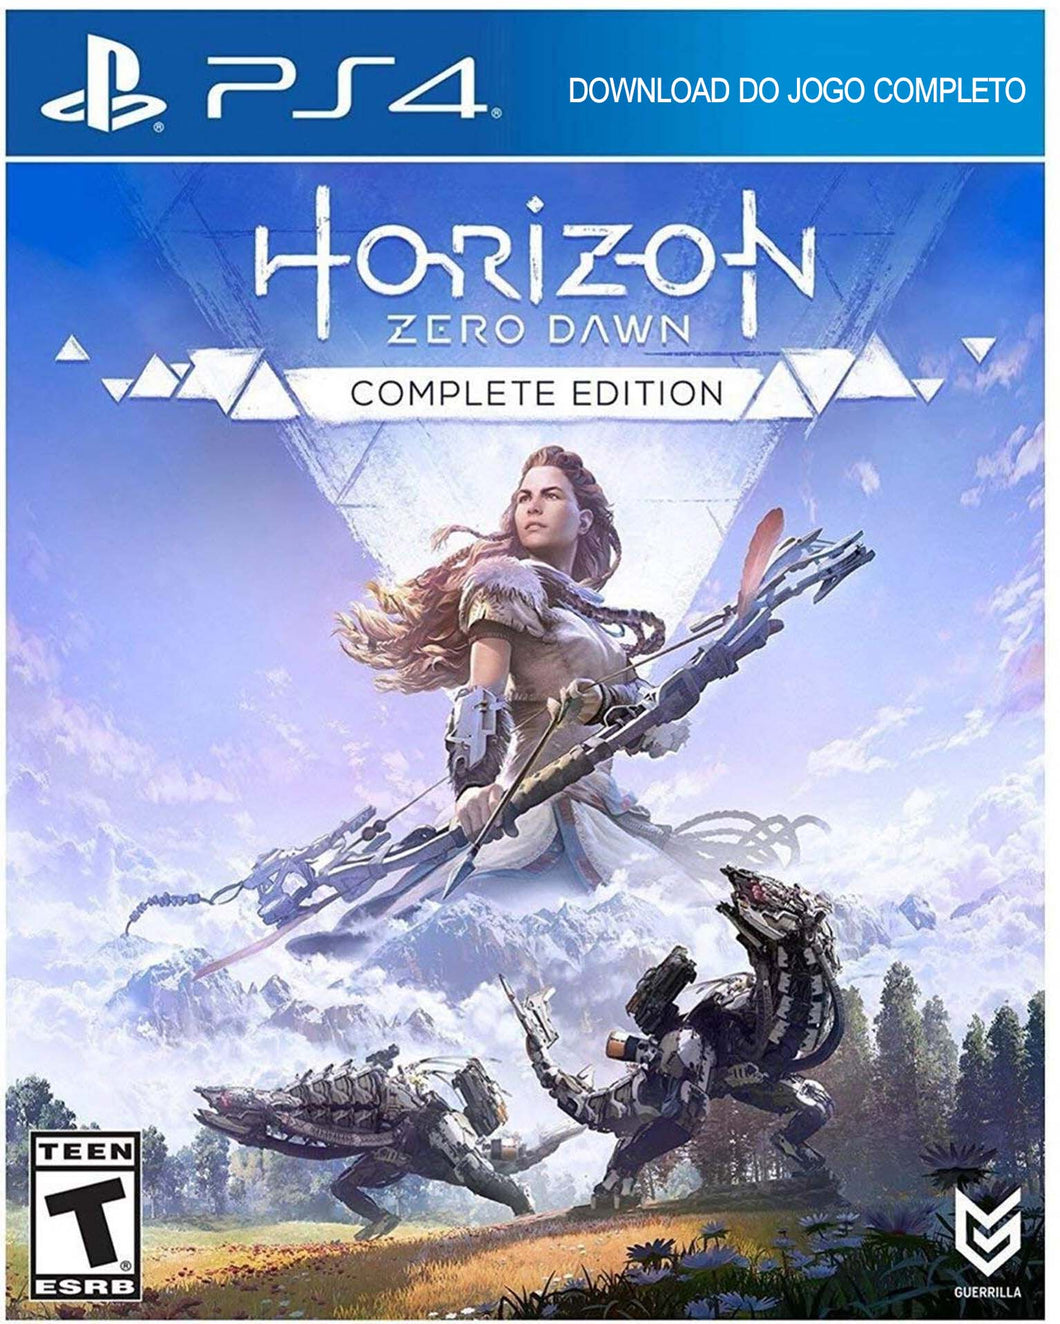 Jogo PS4 - Horizon: Zero Dawn Complete Edition (DIGITAL oficial da SONY)